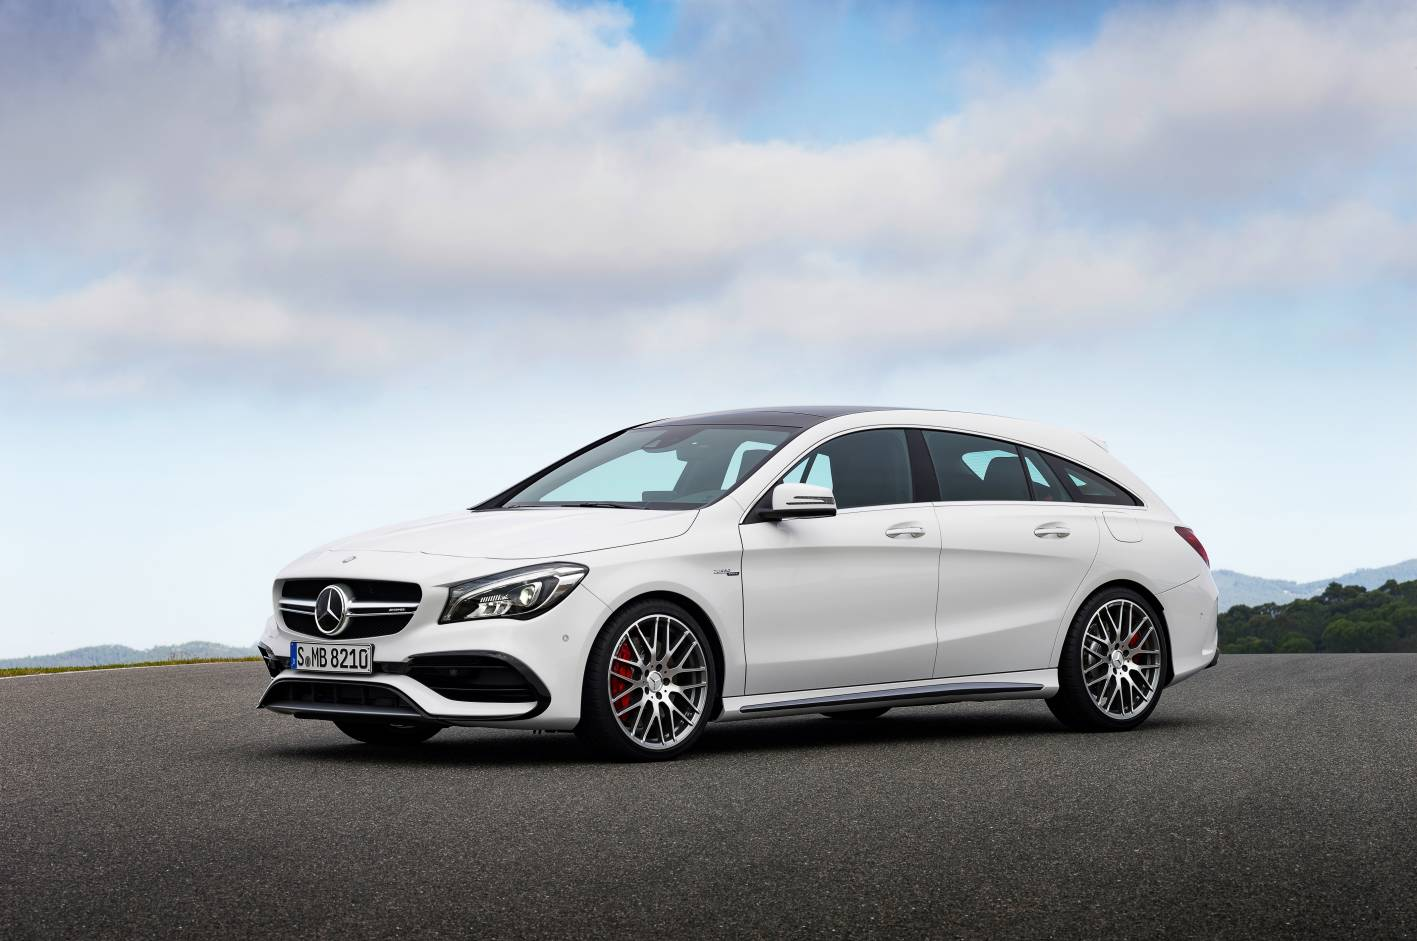 2016 mercedes benz cla coup shooting brake lands in australia. Black Bedroom Furniture Sets. Home Design Ideas